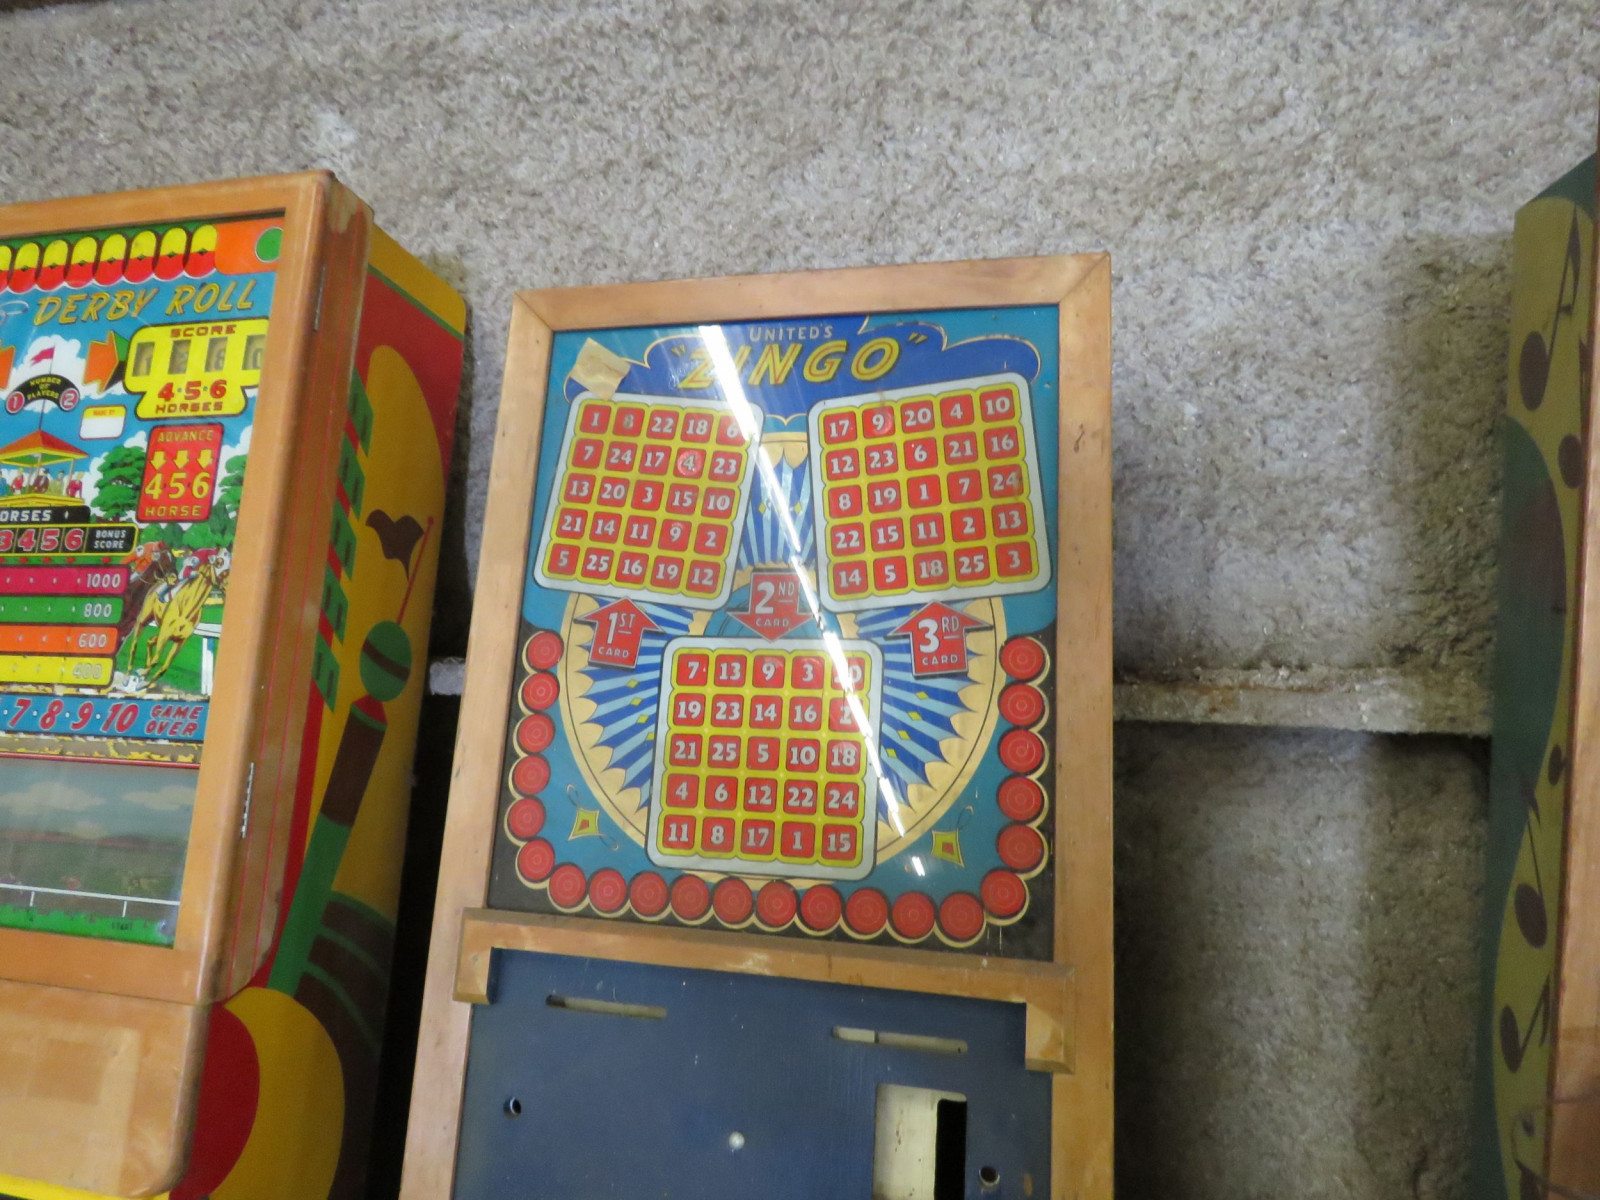 Vintage Ziungo Pinball Machine by United - Image 3